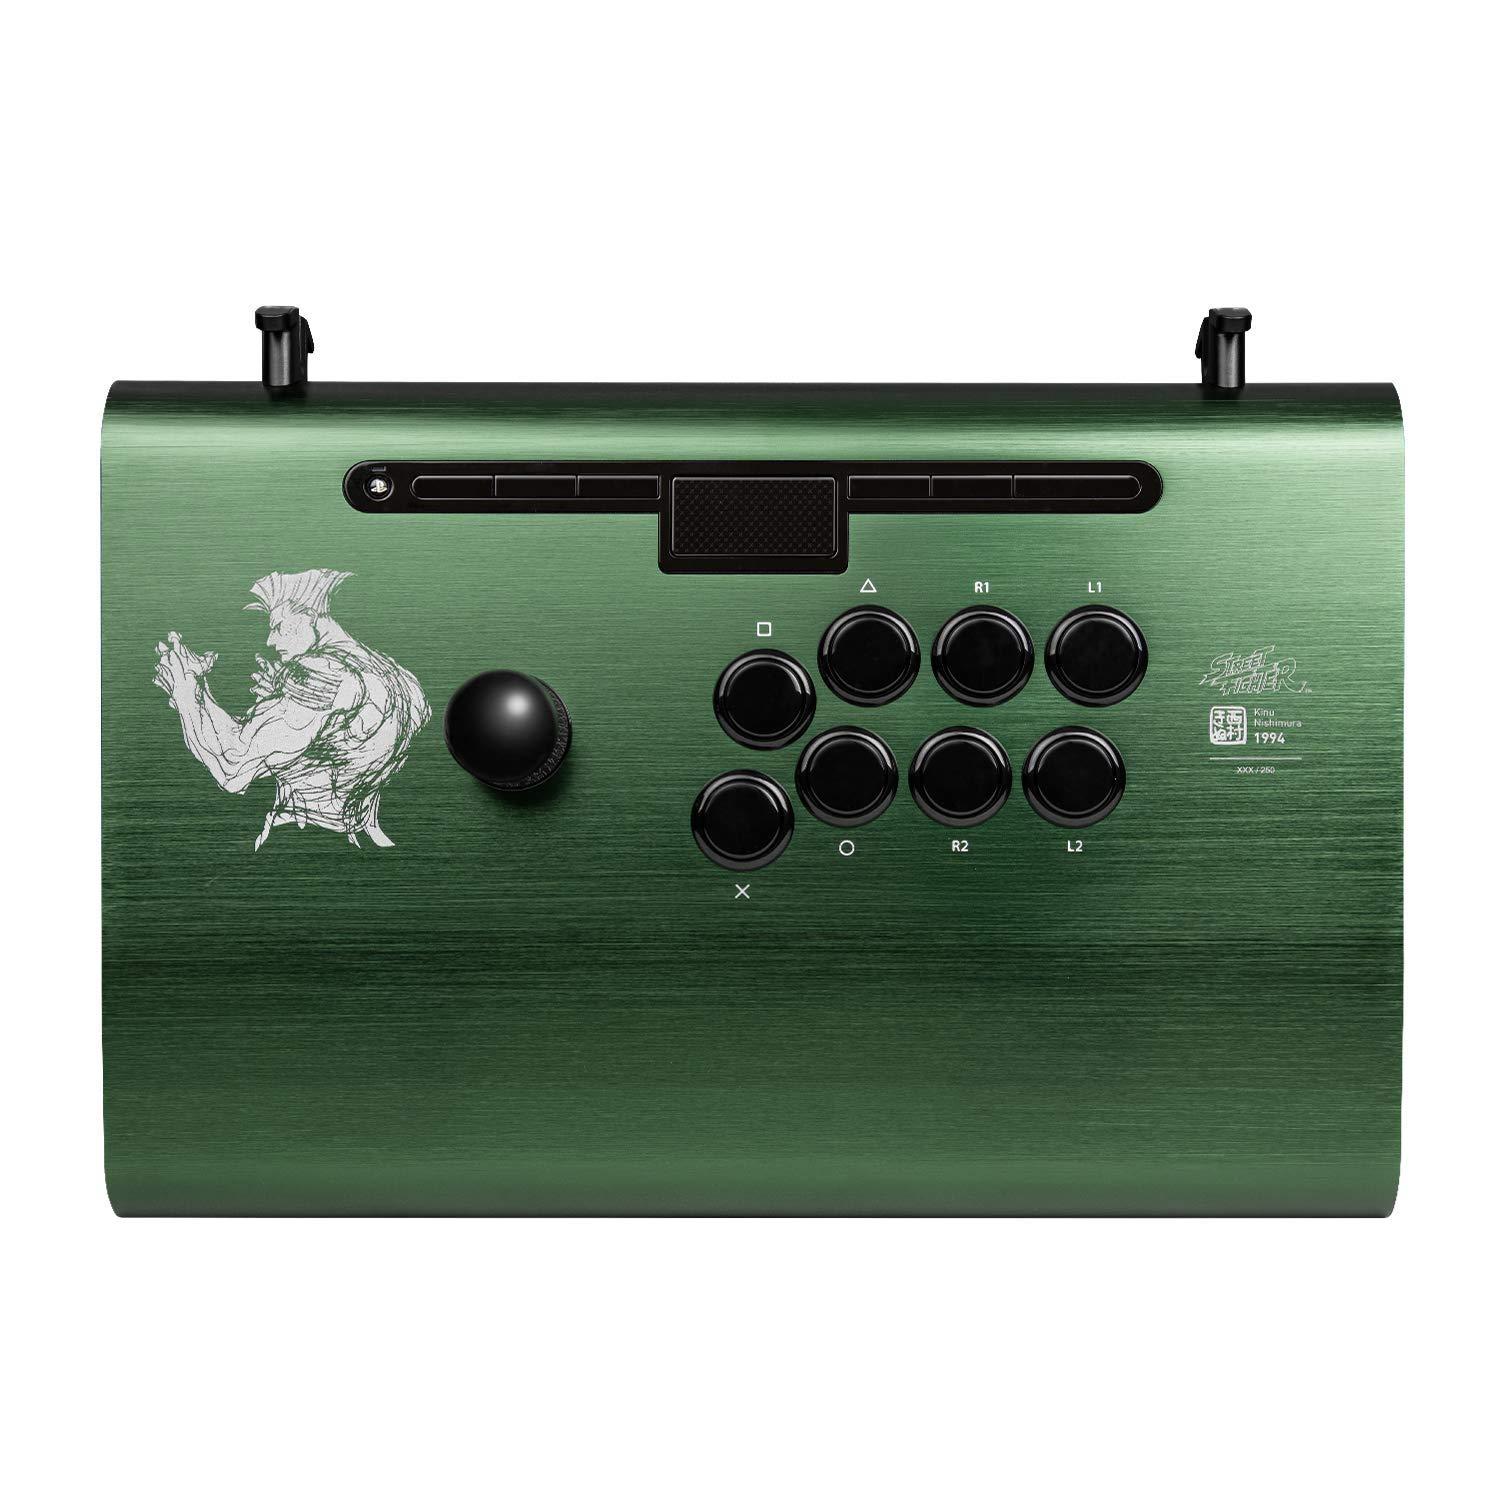 Victrix Guile Limited Edition Pro Fs Arcade Fight Stick - PlayStation 5